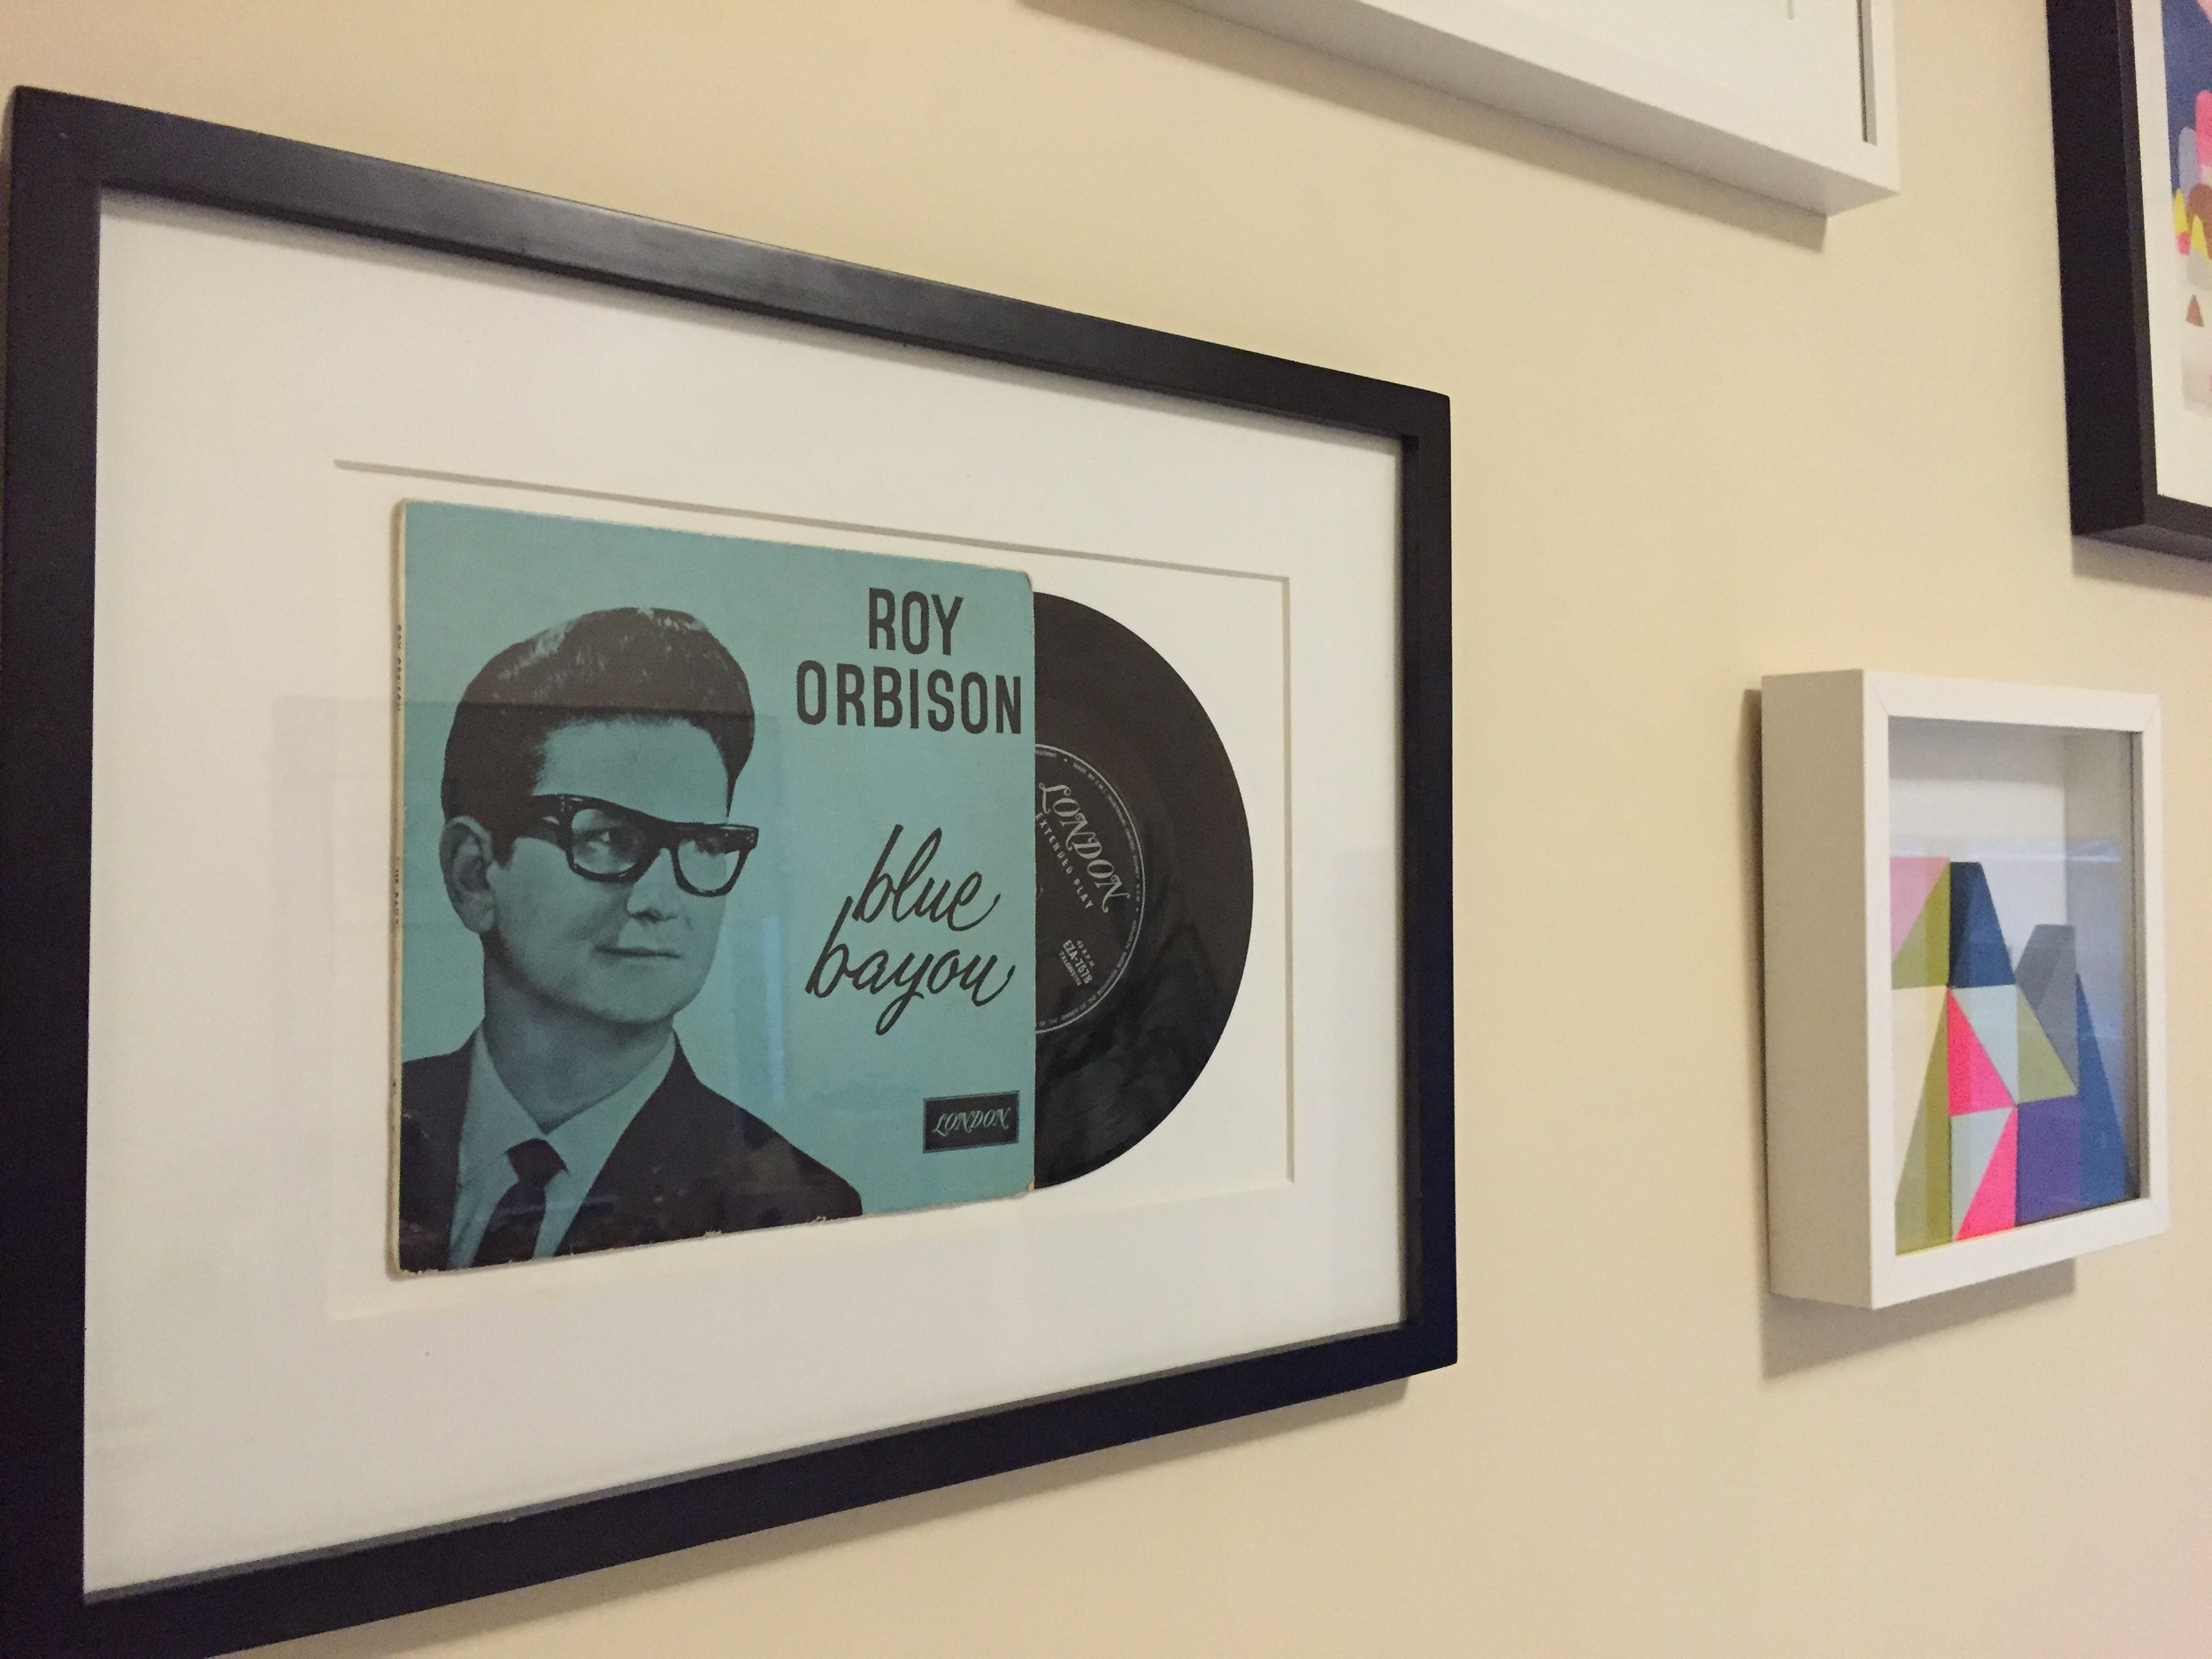 Up close of the Roy Orbison DIY artwork.